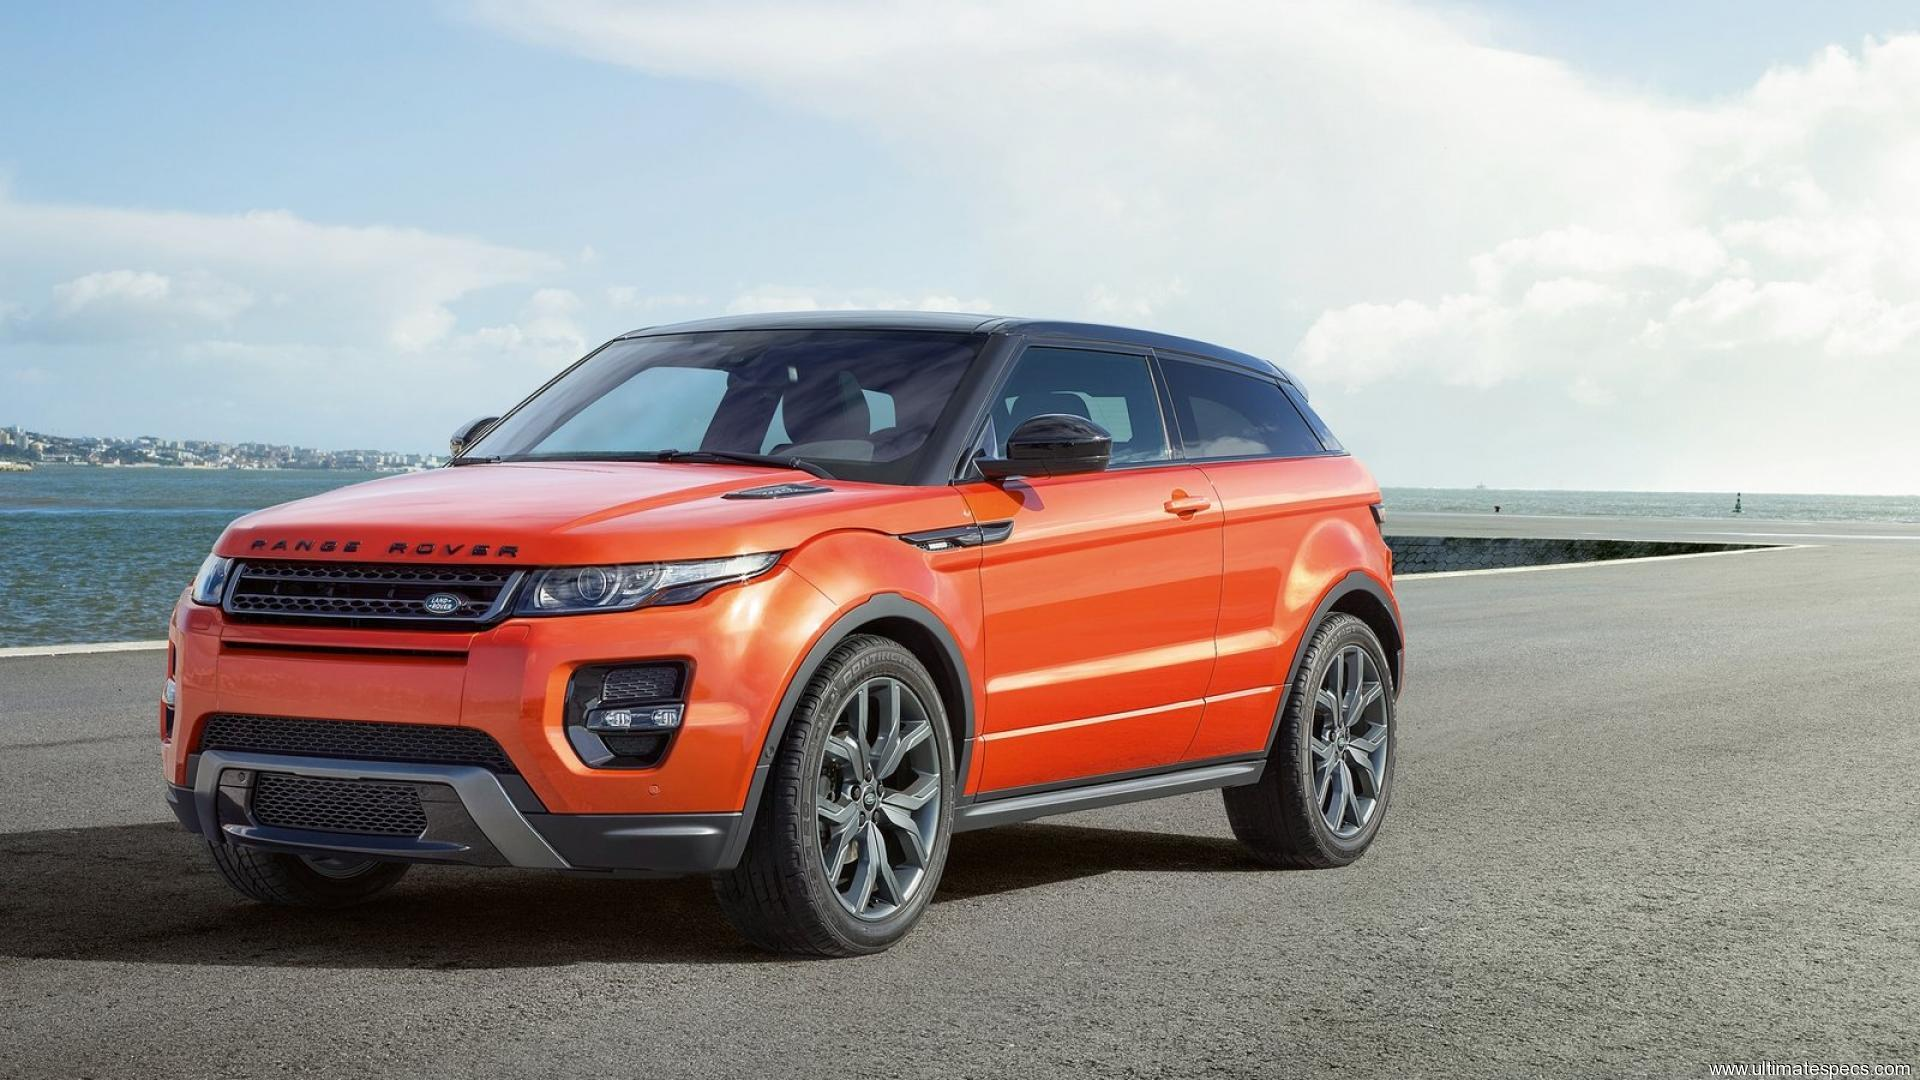 Land Rover Range Rover Evoque Coupe (2015 Facelift)